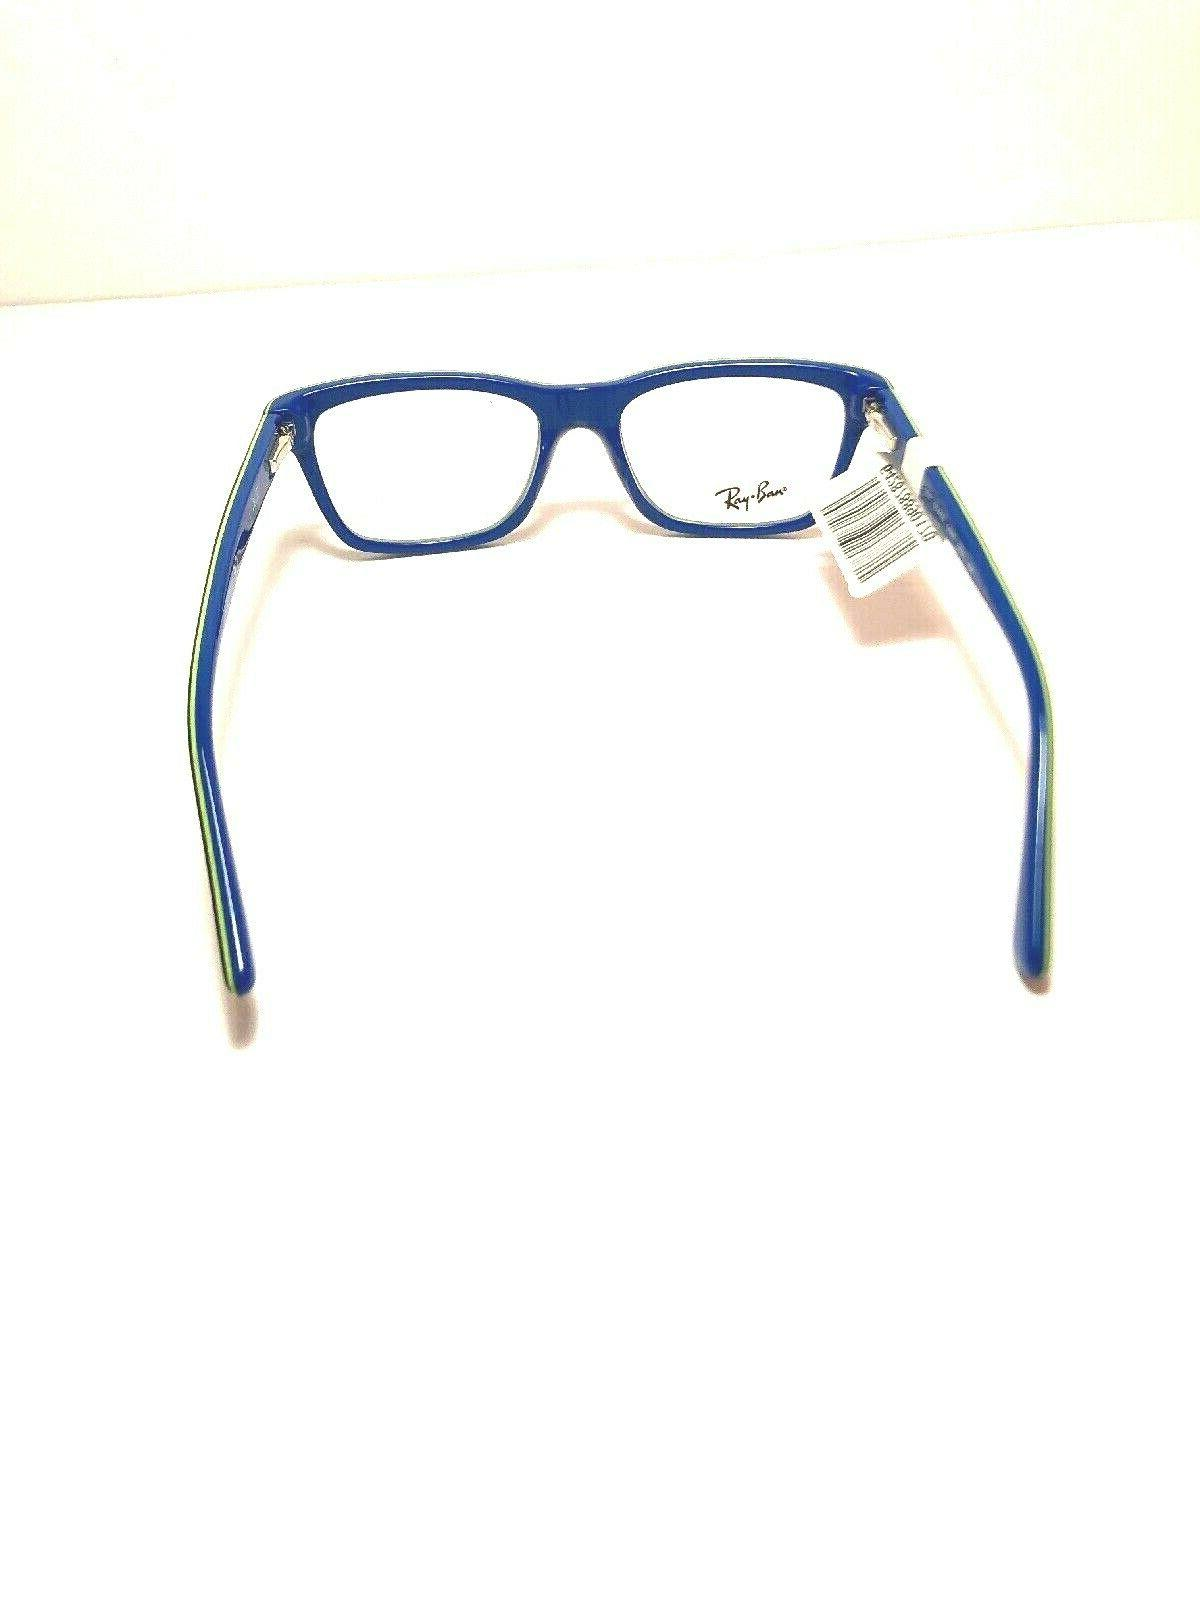 NEW Ban RB 1536 Kids Eyeglasses/Frames